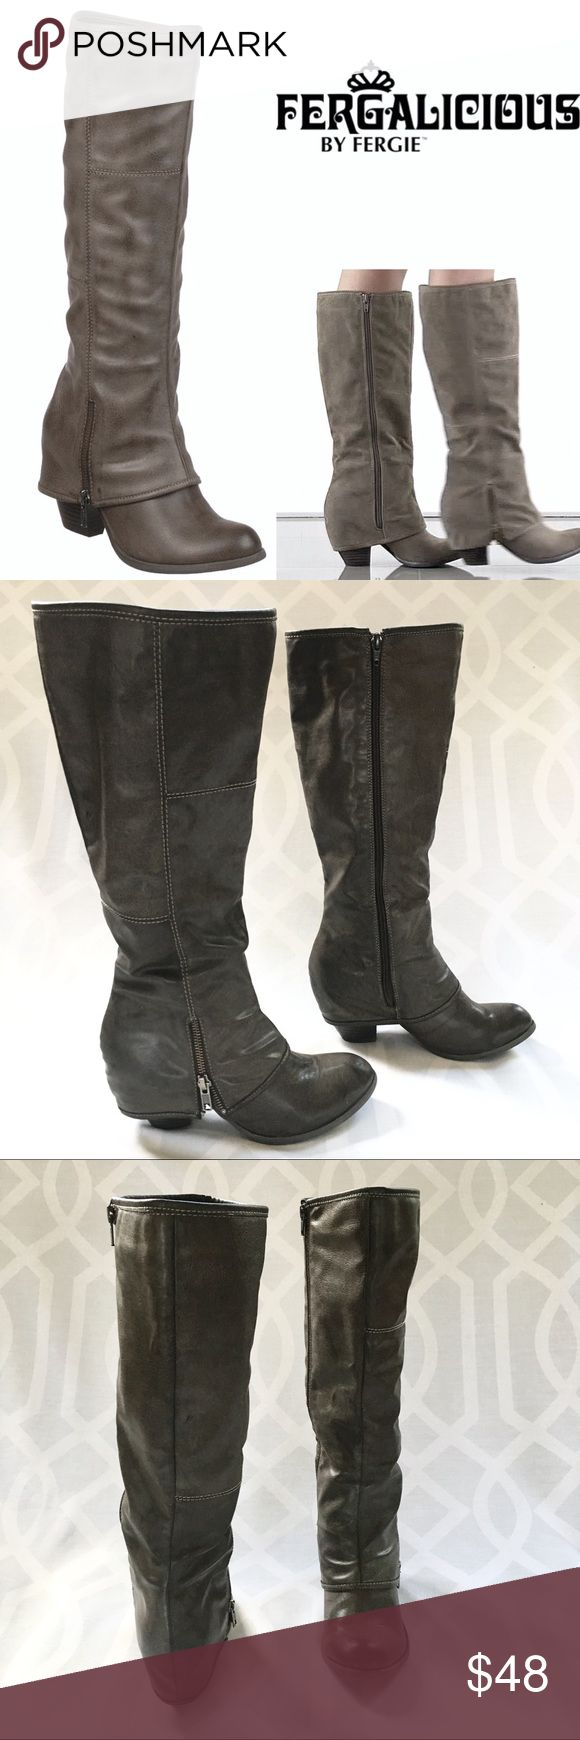 """FERGIE """"Ryder"""" Taupe Ledger Boot FERAILICIOUS BY FERGIE """"Ryder"""" Knee High Ledger Boot. Dark Taupe/Gray. Boho Western Style Riding Boot. Stacked Heel. Side Zip. Partial Zip Detail on exterior. First photo is a stock photo.   Condition: Great/preowned, some wear on sole, light scuffs on toes.   Material: Man Made  Style: L-RYDER Size: 8M Heel Height: 2 3/4in Sole Height: Single Sole Shaft: 16in Calf Opening: 16in Fergie Shoes Heeled Boots"""